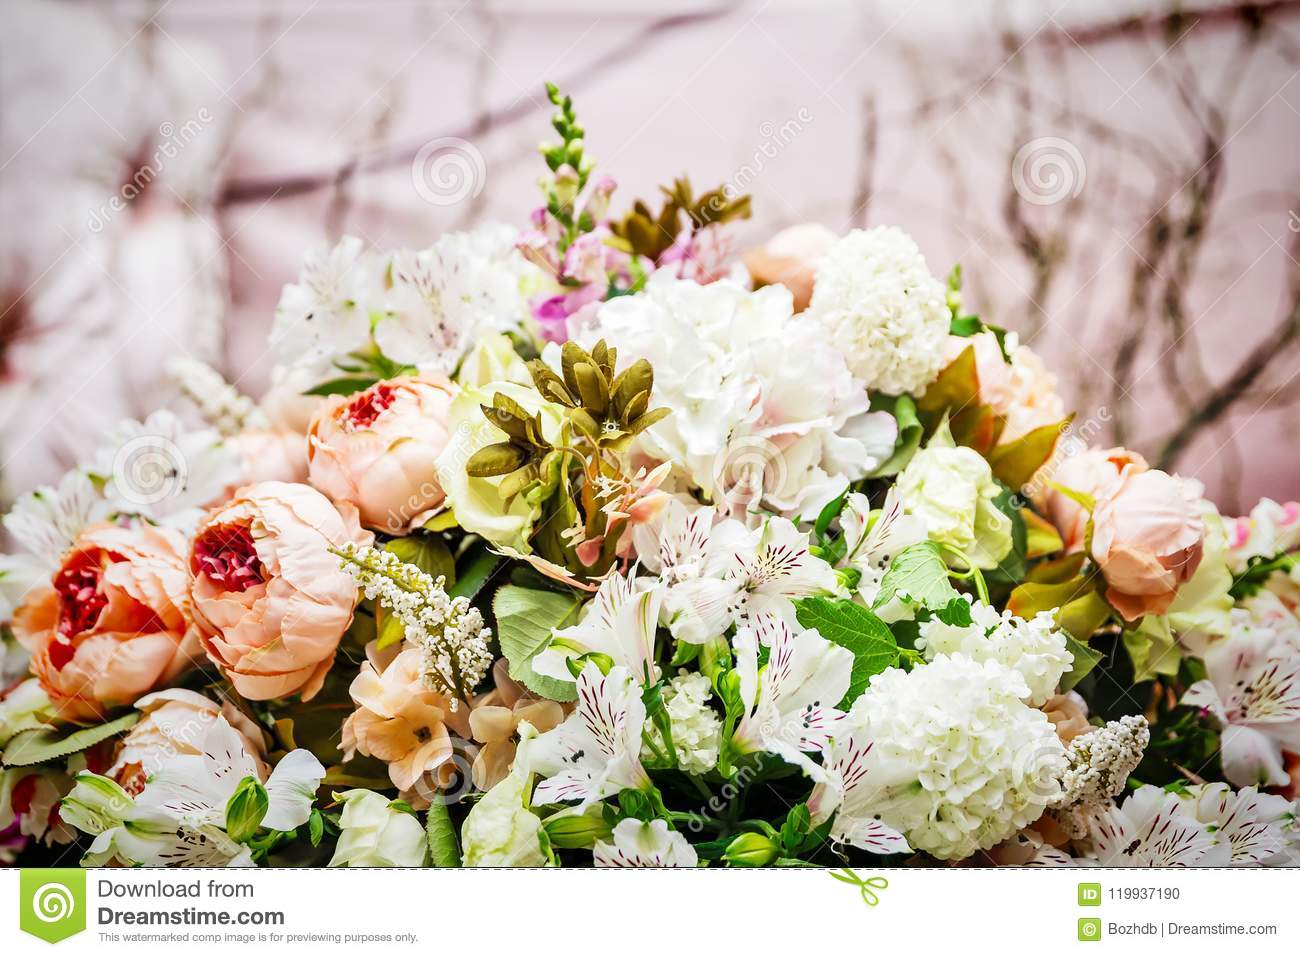 Decoration Of Flowers For Wedding Stock Photo Image Of Catering